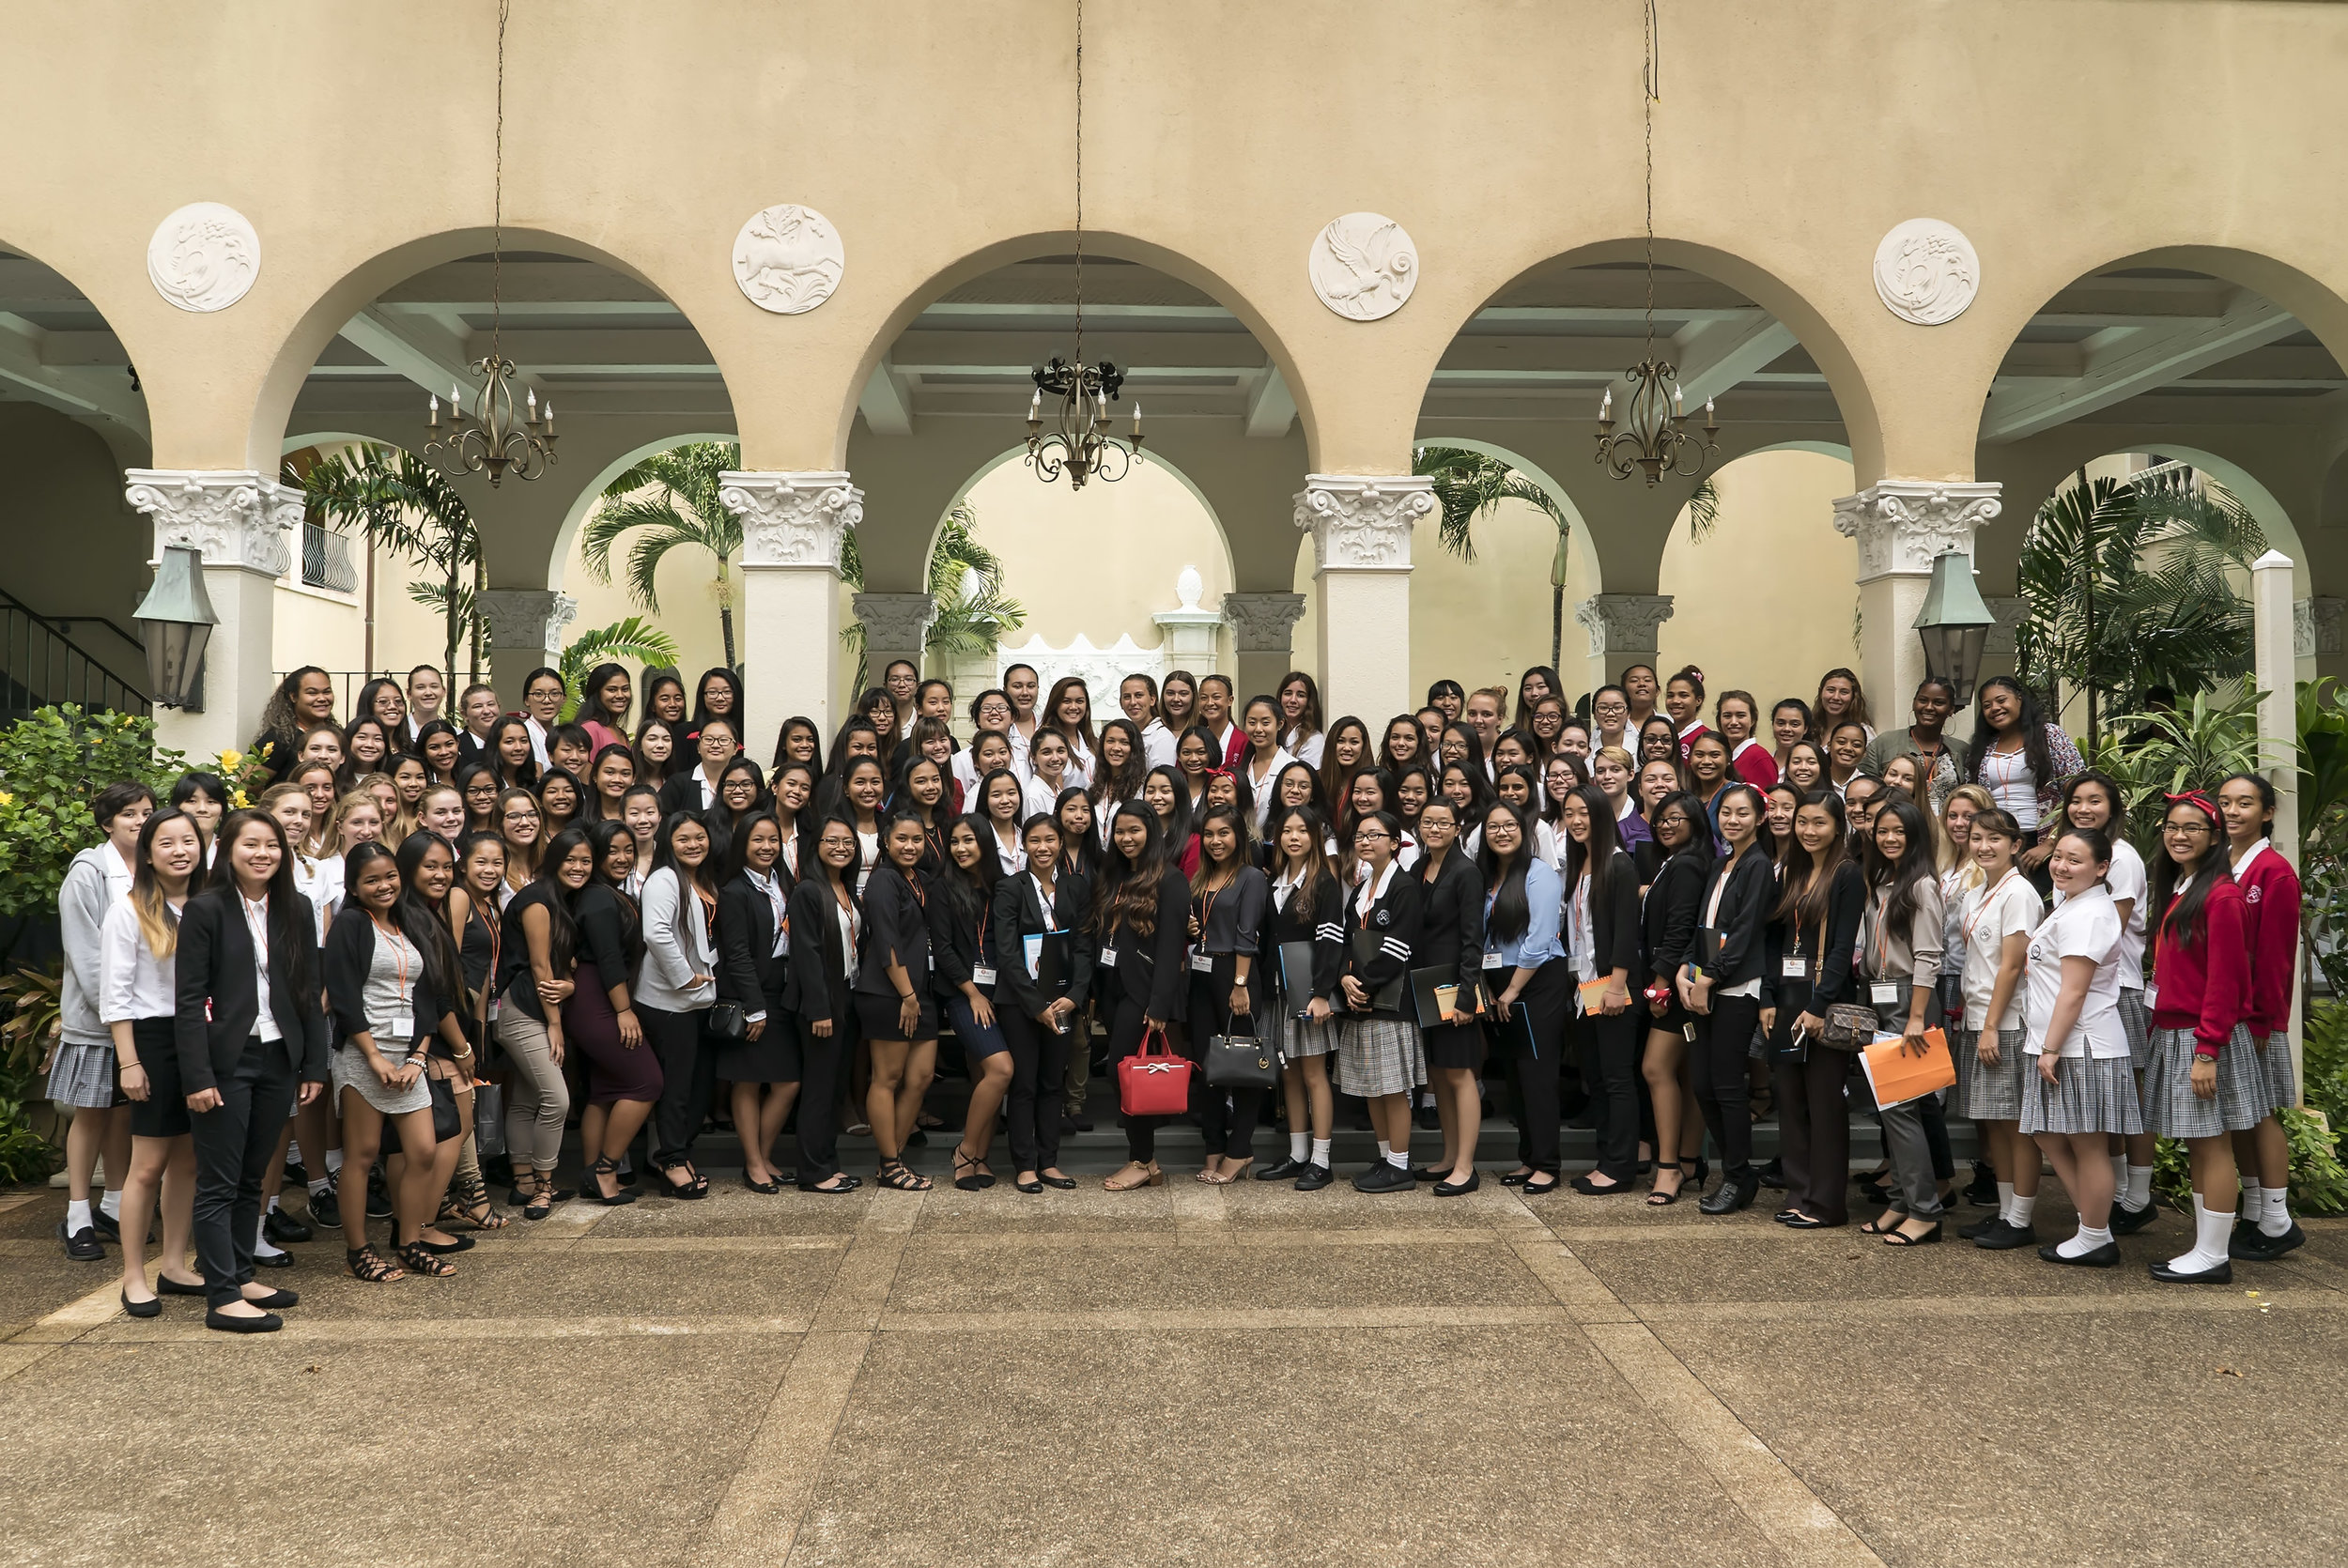 2017 Spring Girls' Summit O'ahu- The young women of Farrington High School, McKinley High School & St. Andrew's Schools- The Priory- at YWCA O'ahu Laniākea Courtyard.